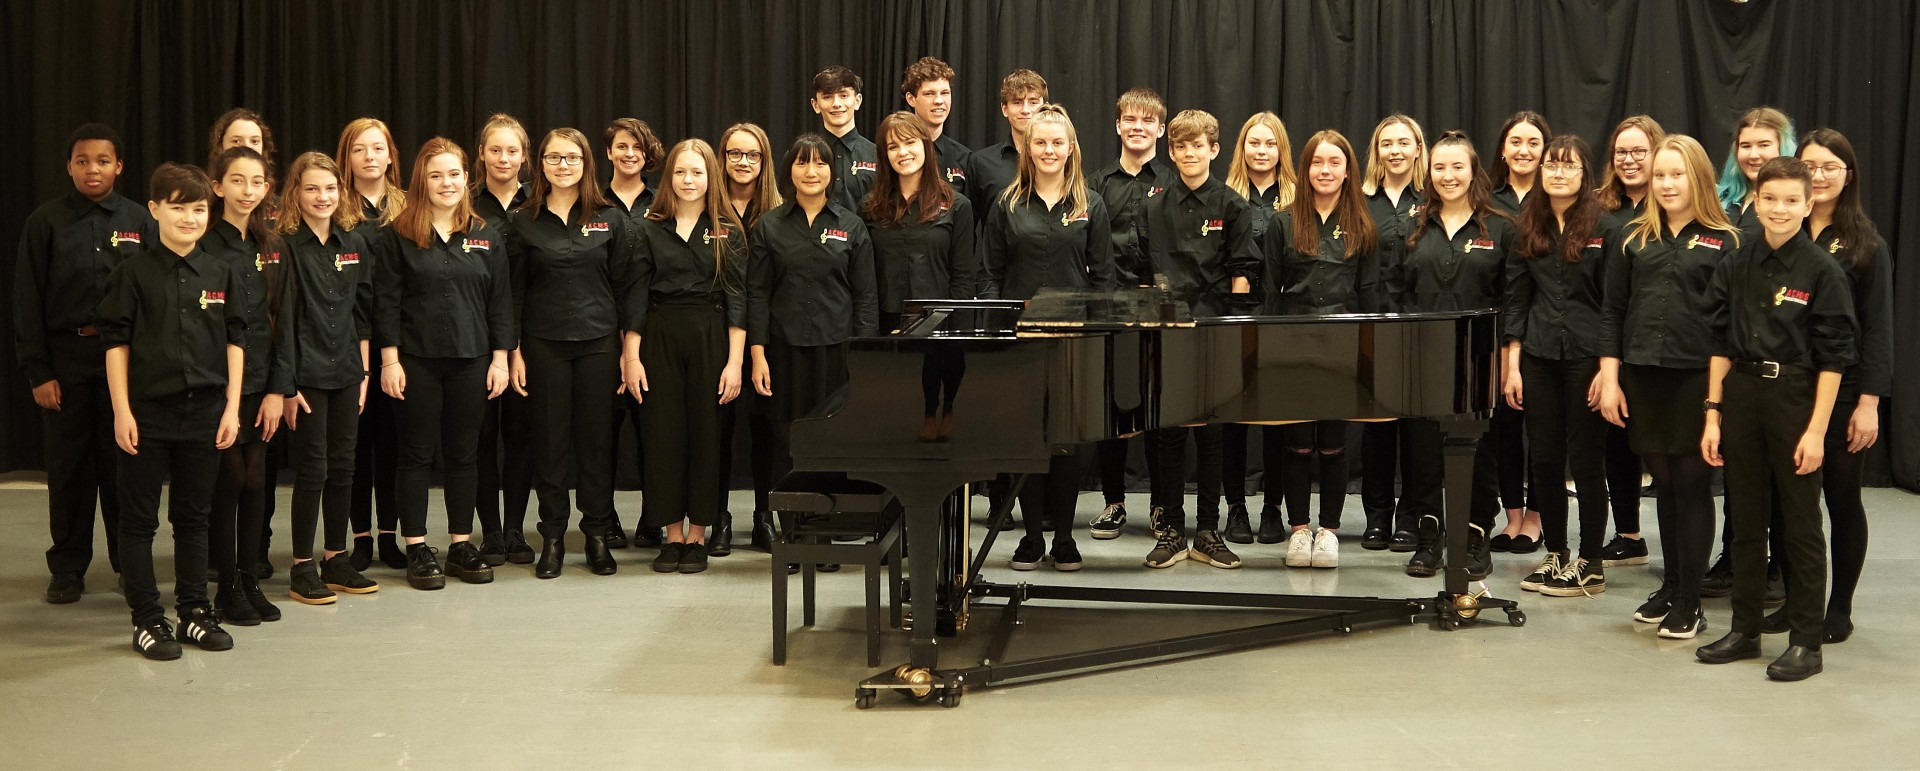 Aberdeen City Music School students earlier this year